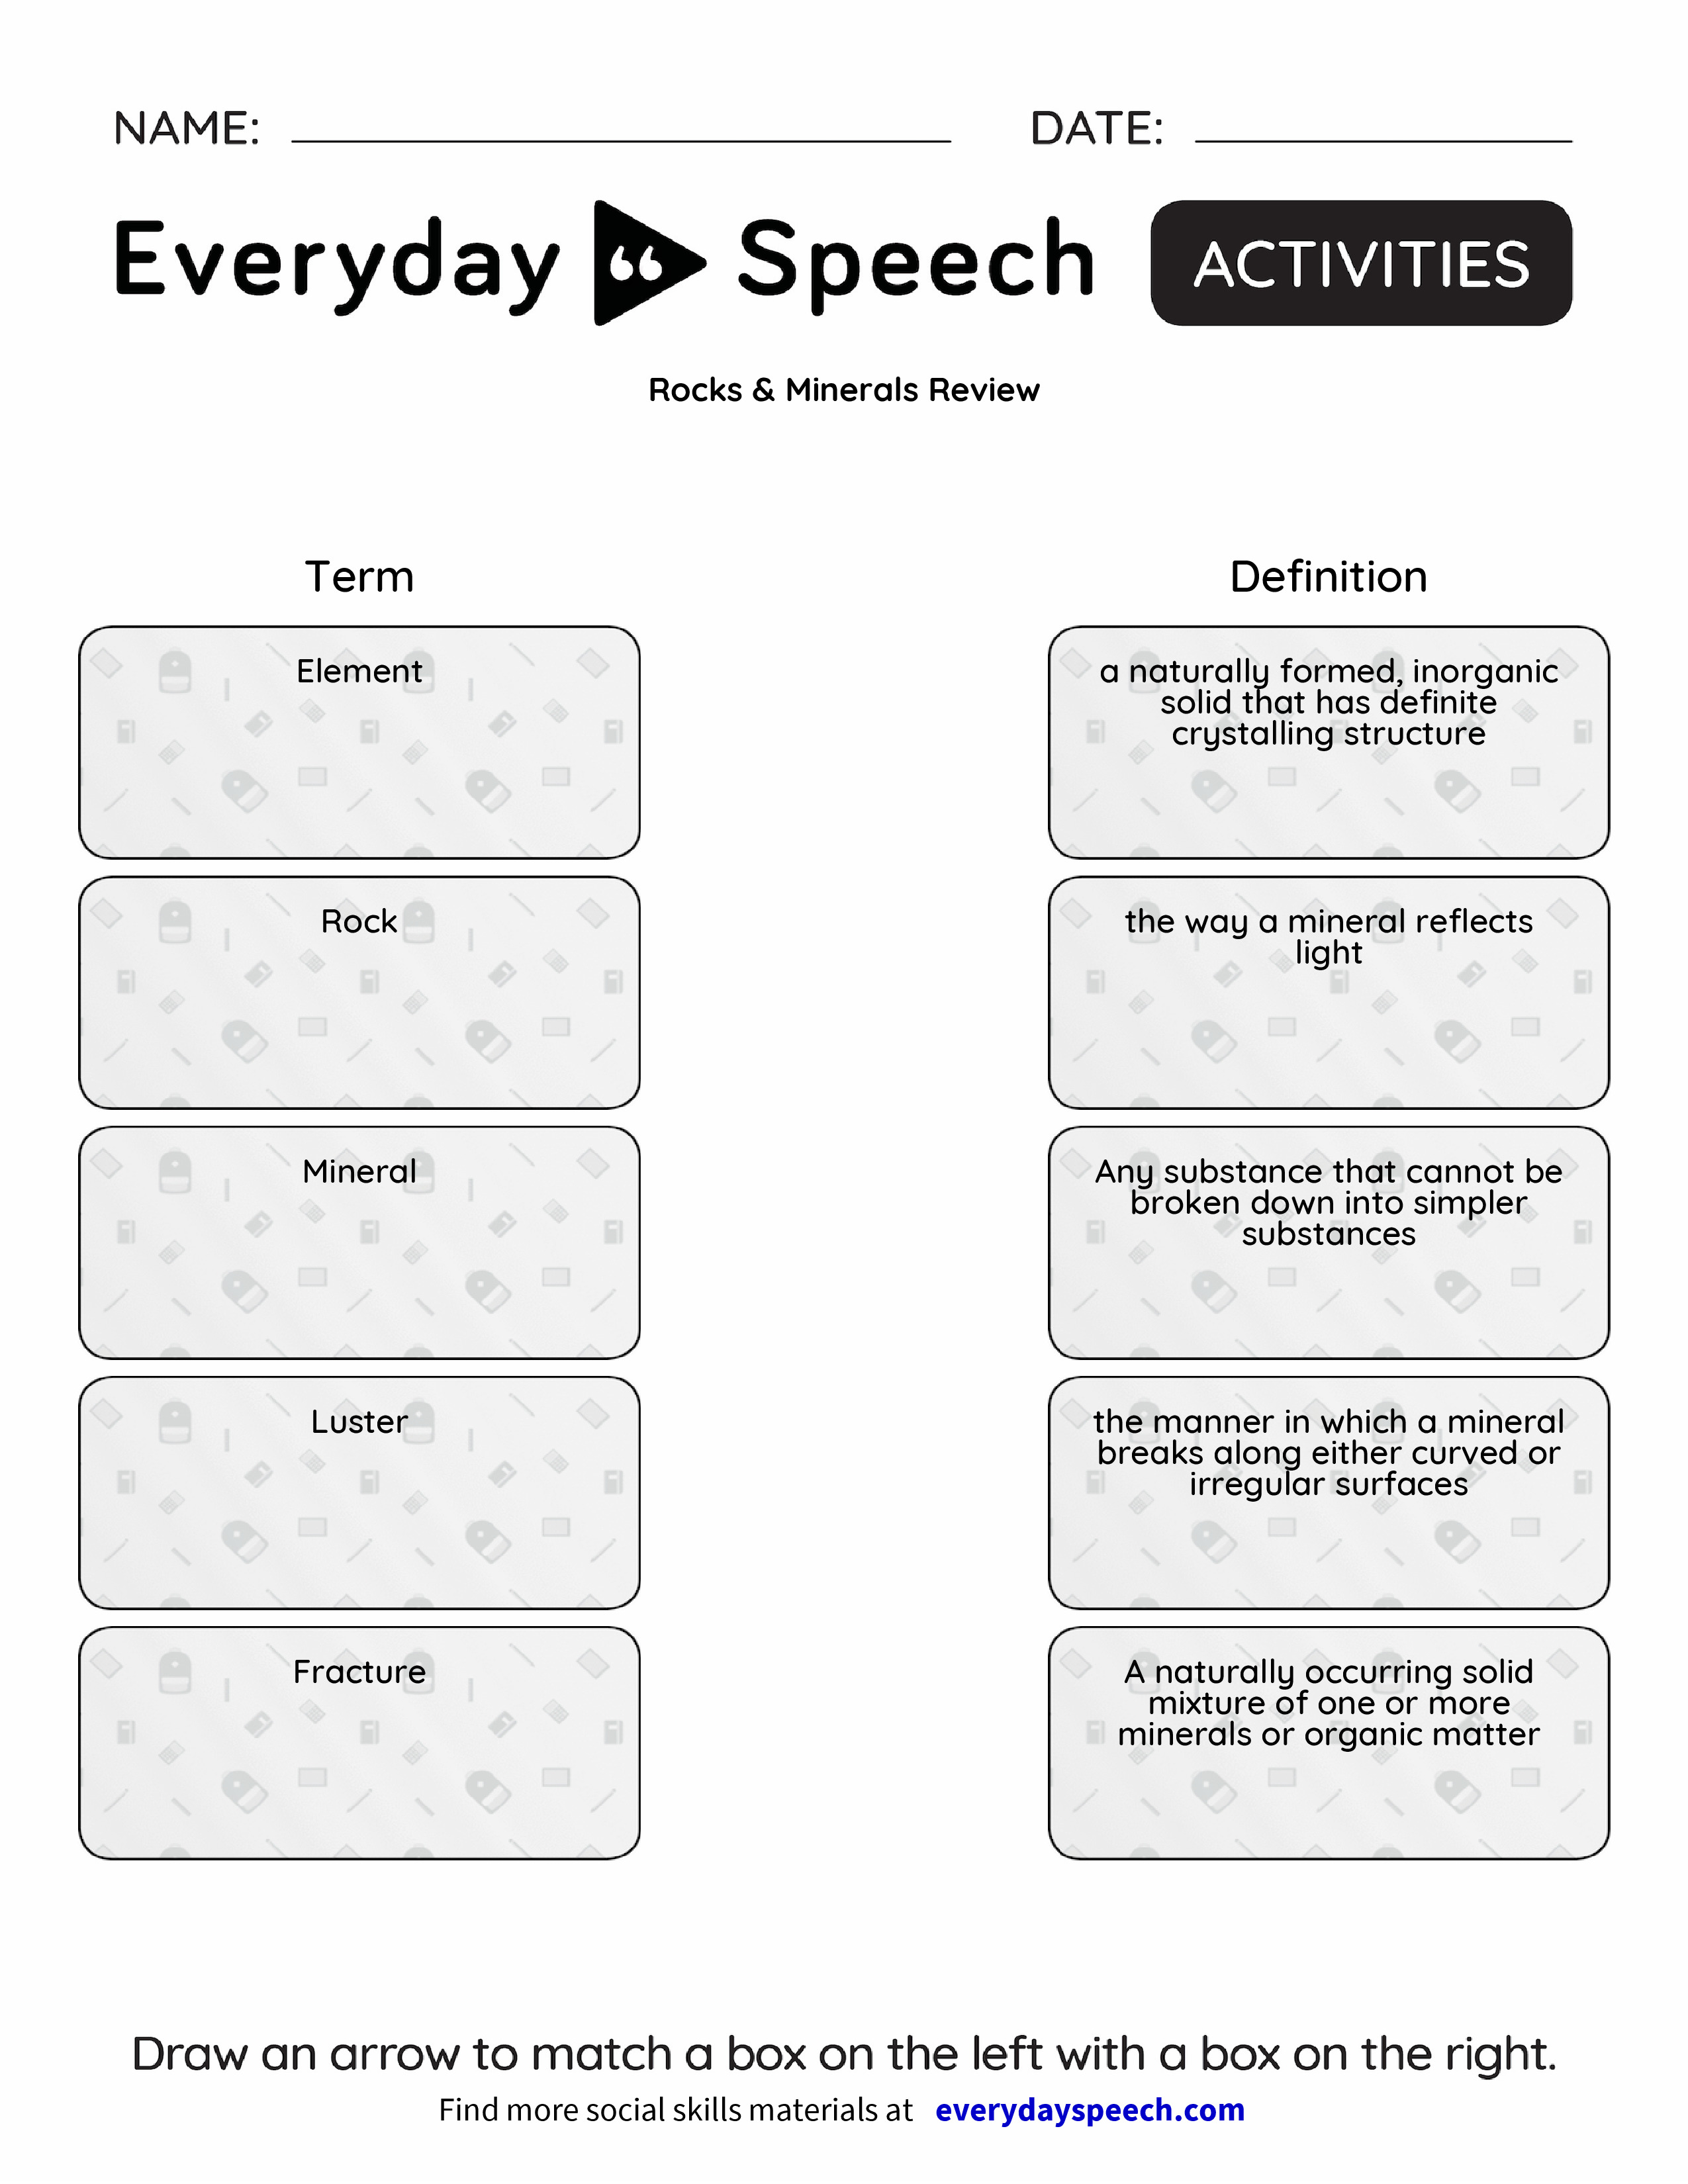 Worksheets Minerals Worksheet rocks minerals review everyday speech preview